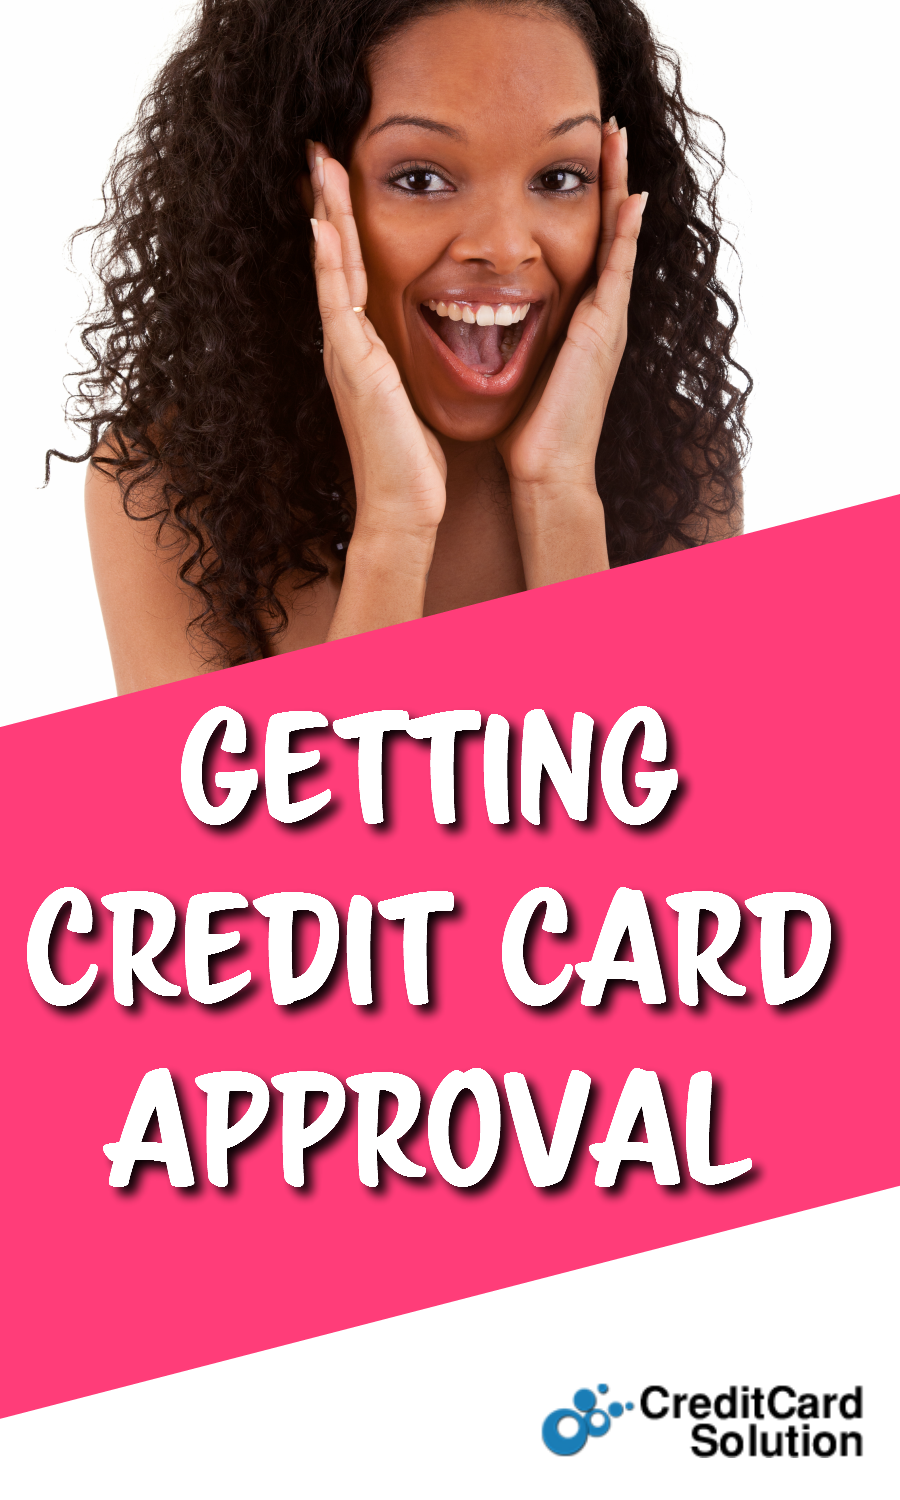 Getting Credit Card Approval